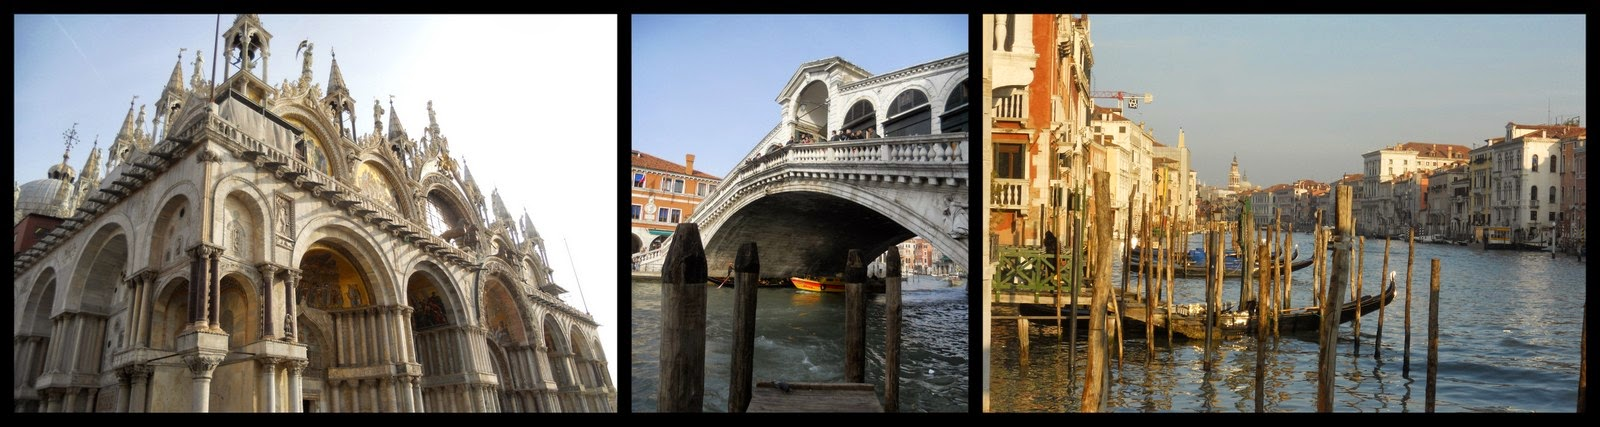 Ryanair Weekend Destination Ideas: Venice in November